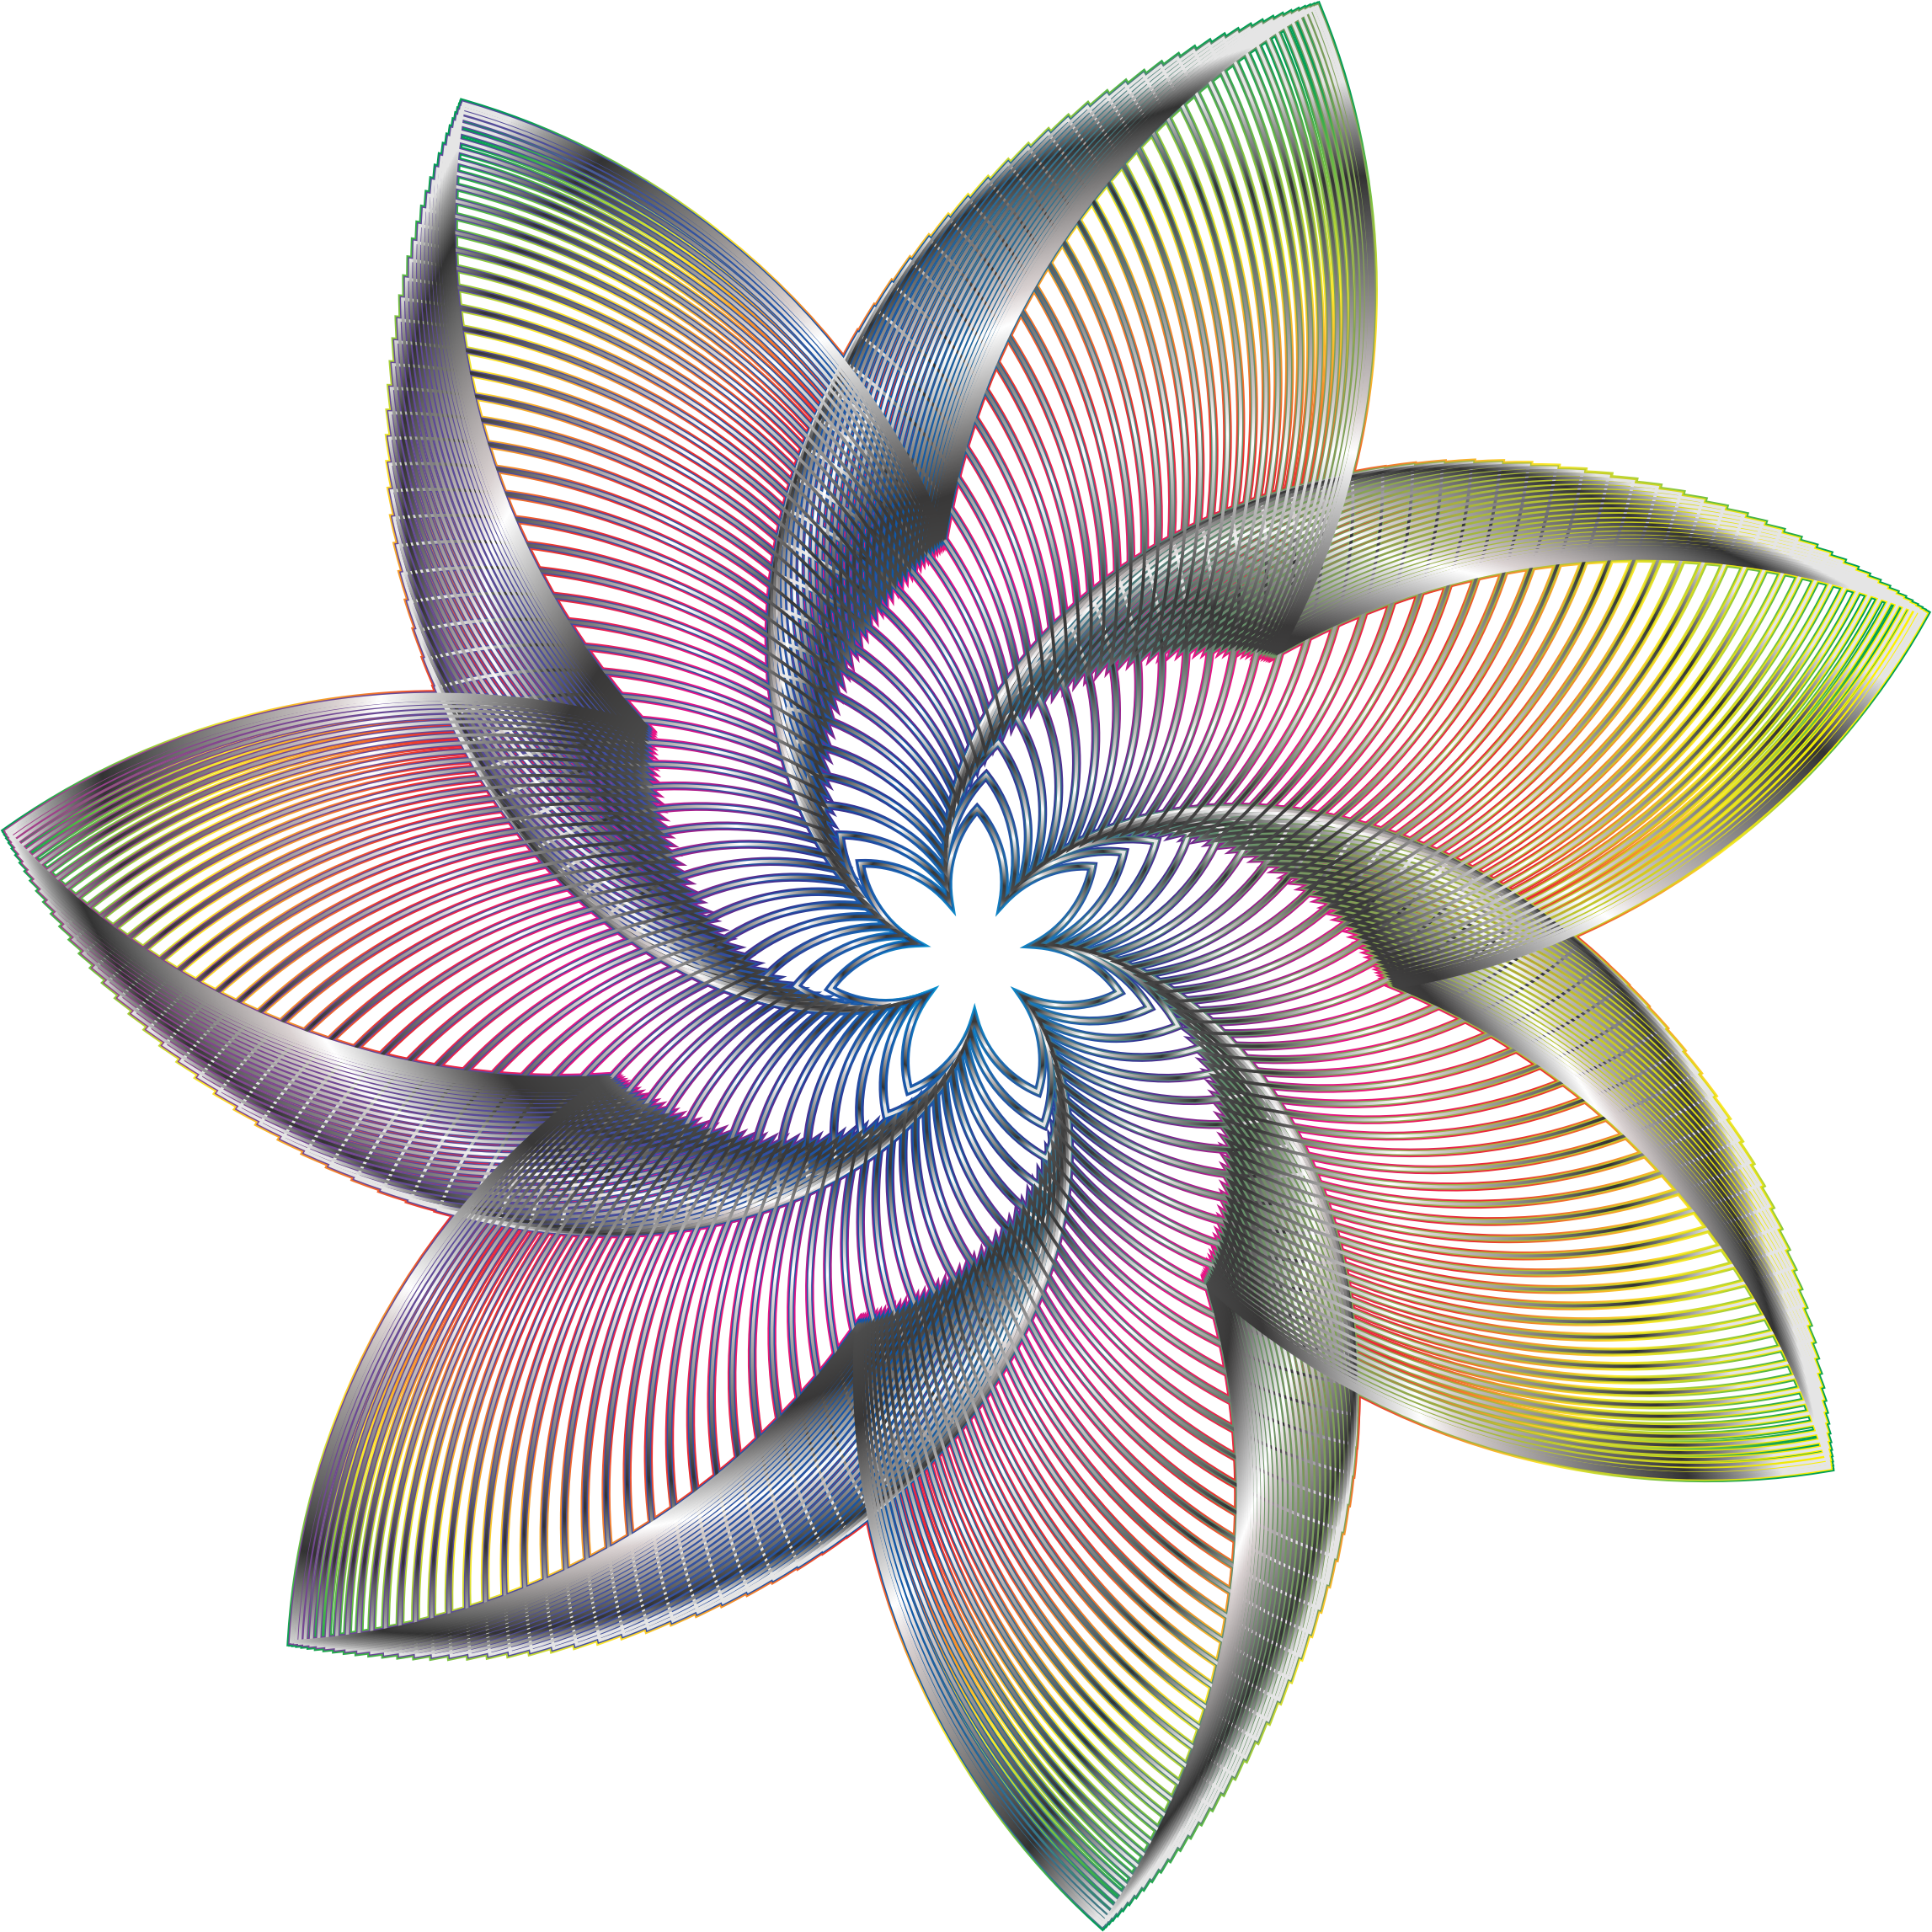 Prismatic Flower Line Art 7 No Background by GDJ